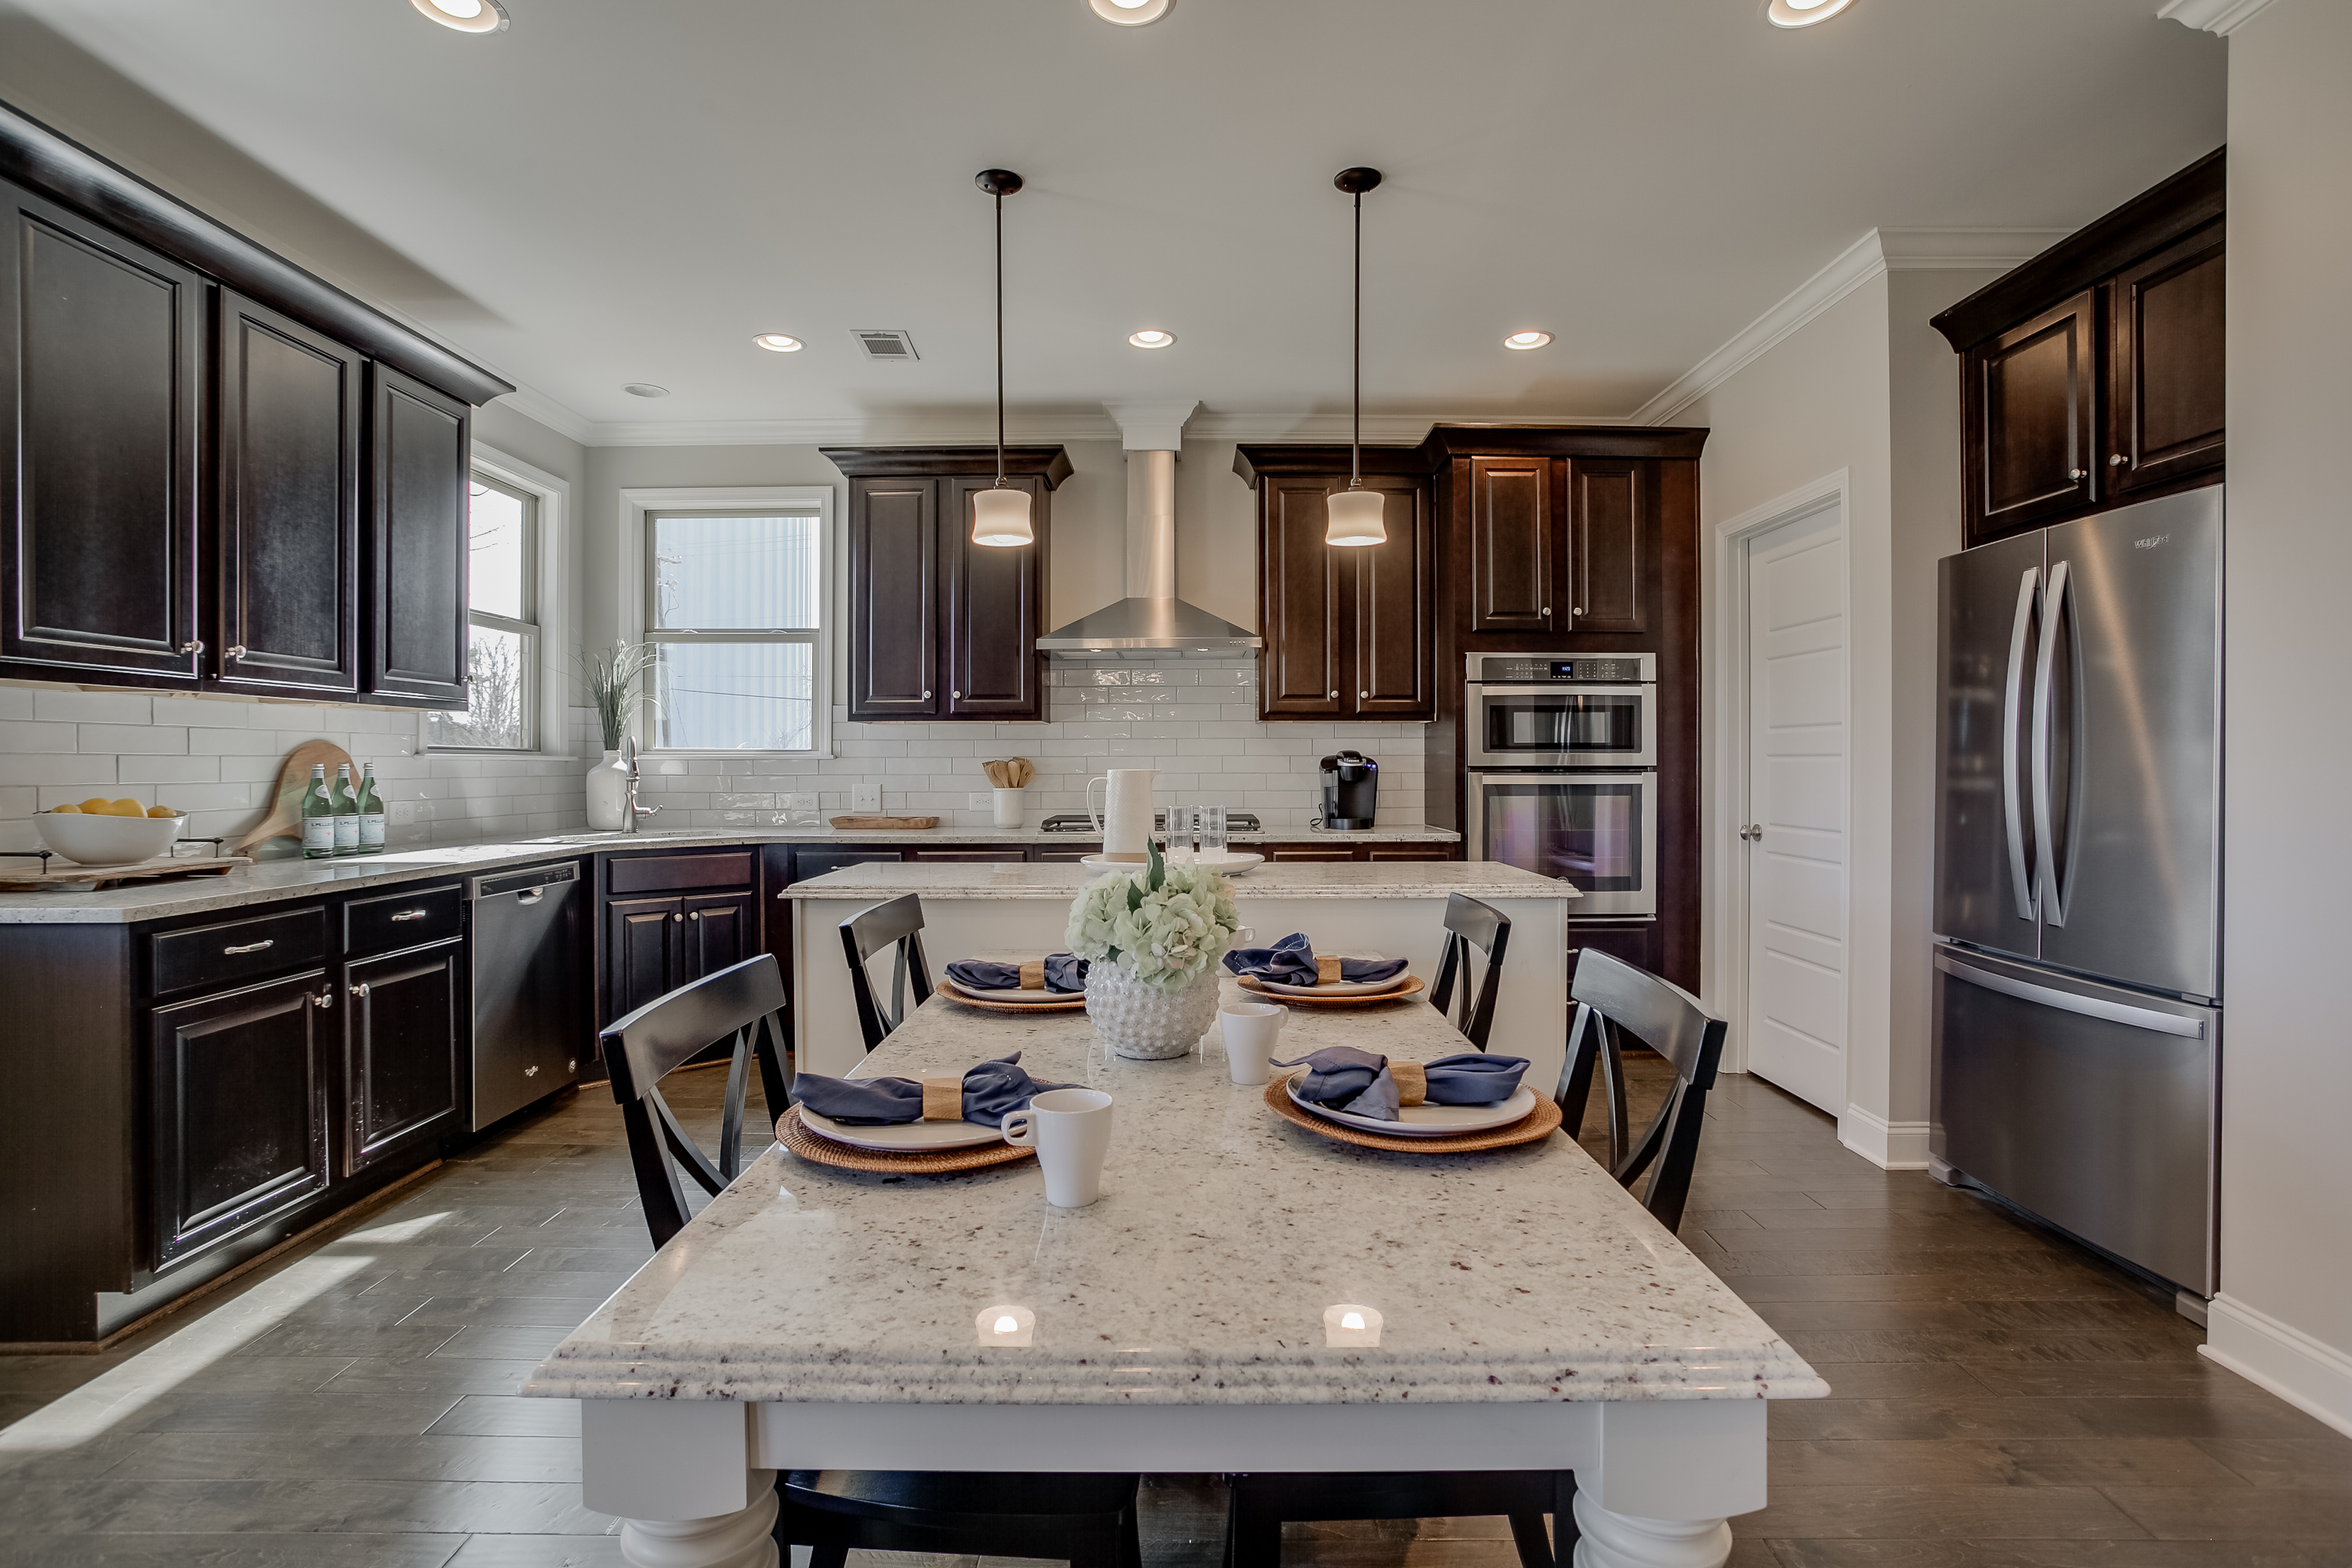 SR Homes Opens Decorated Model at New Cumming Community